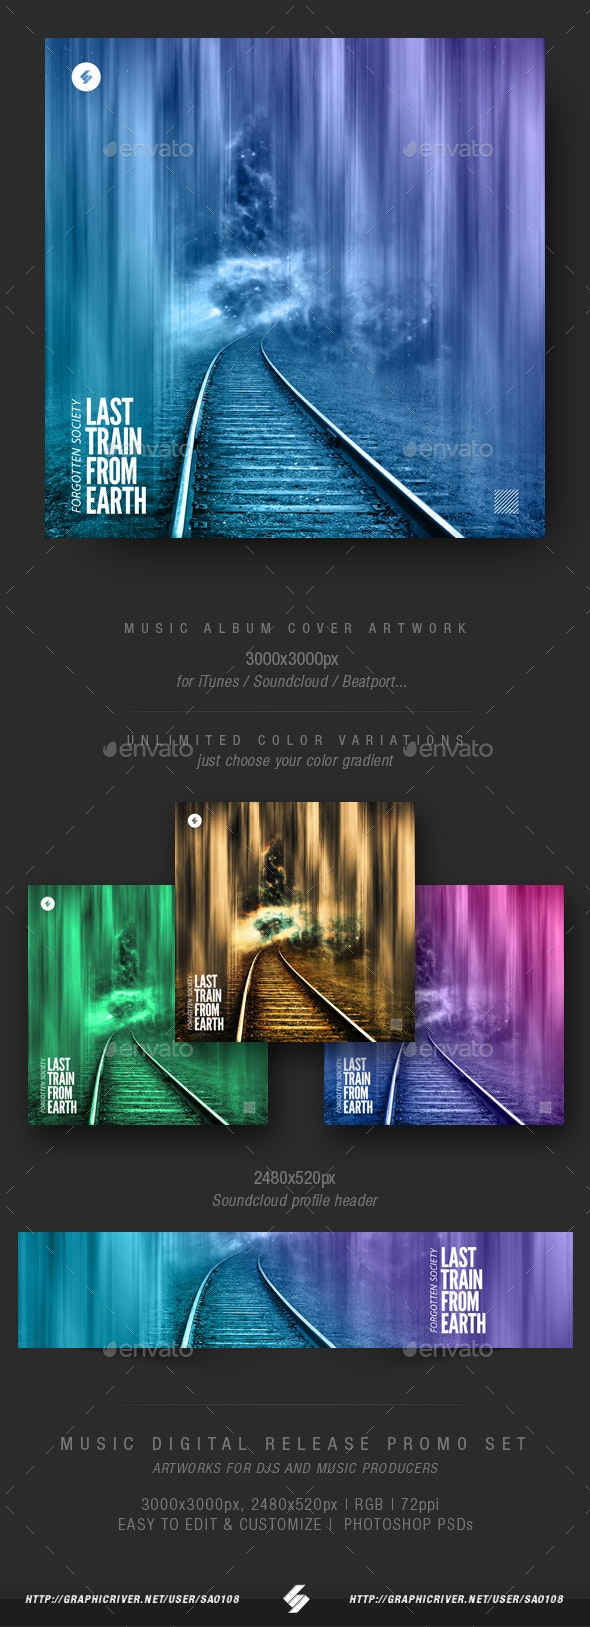 Last Train From Earth - Music Album Cover Artwork Template